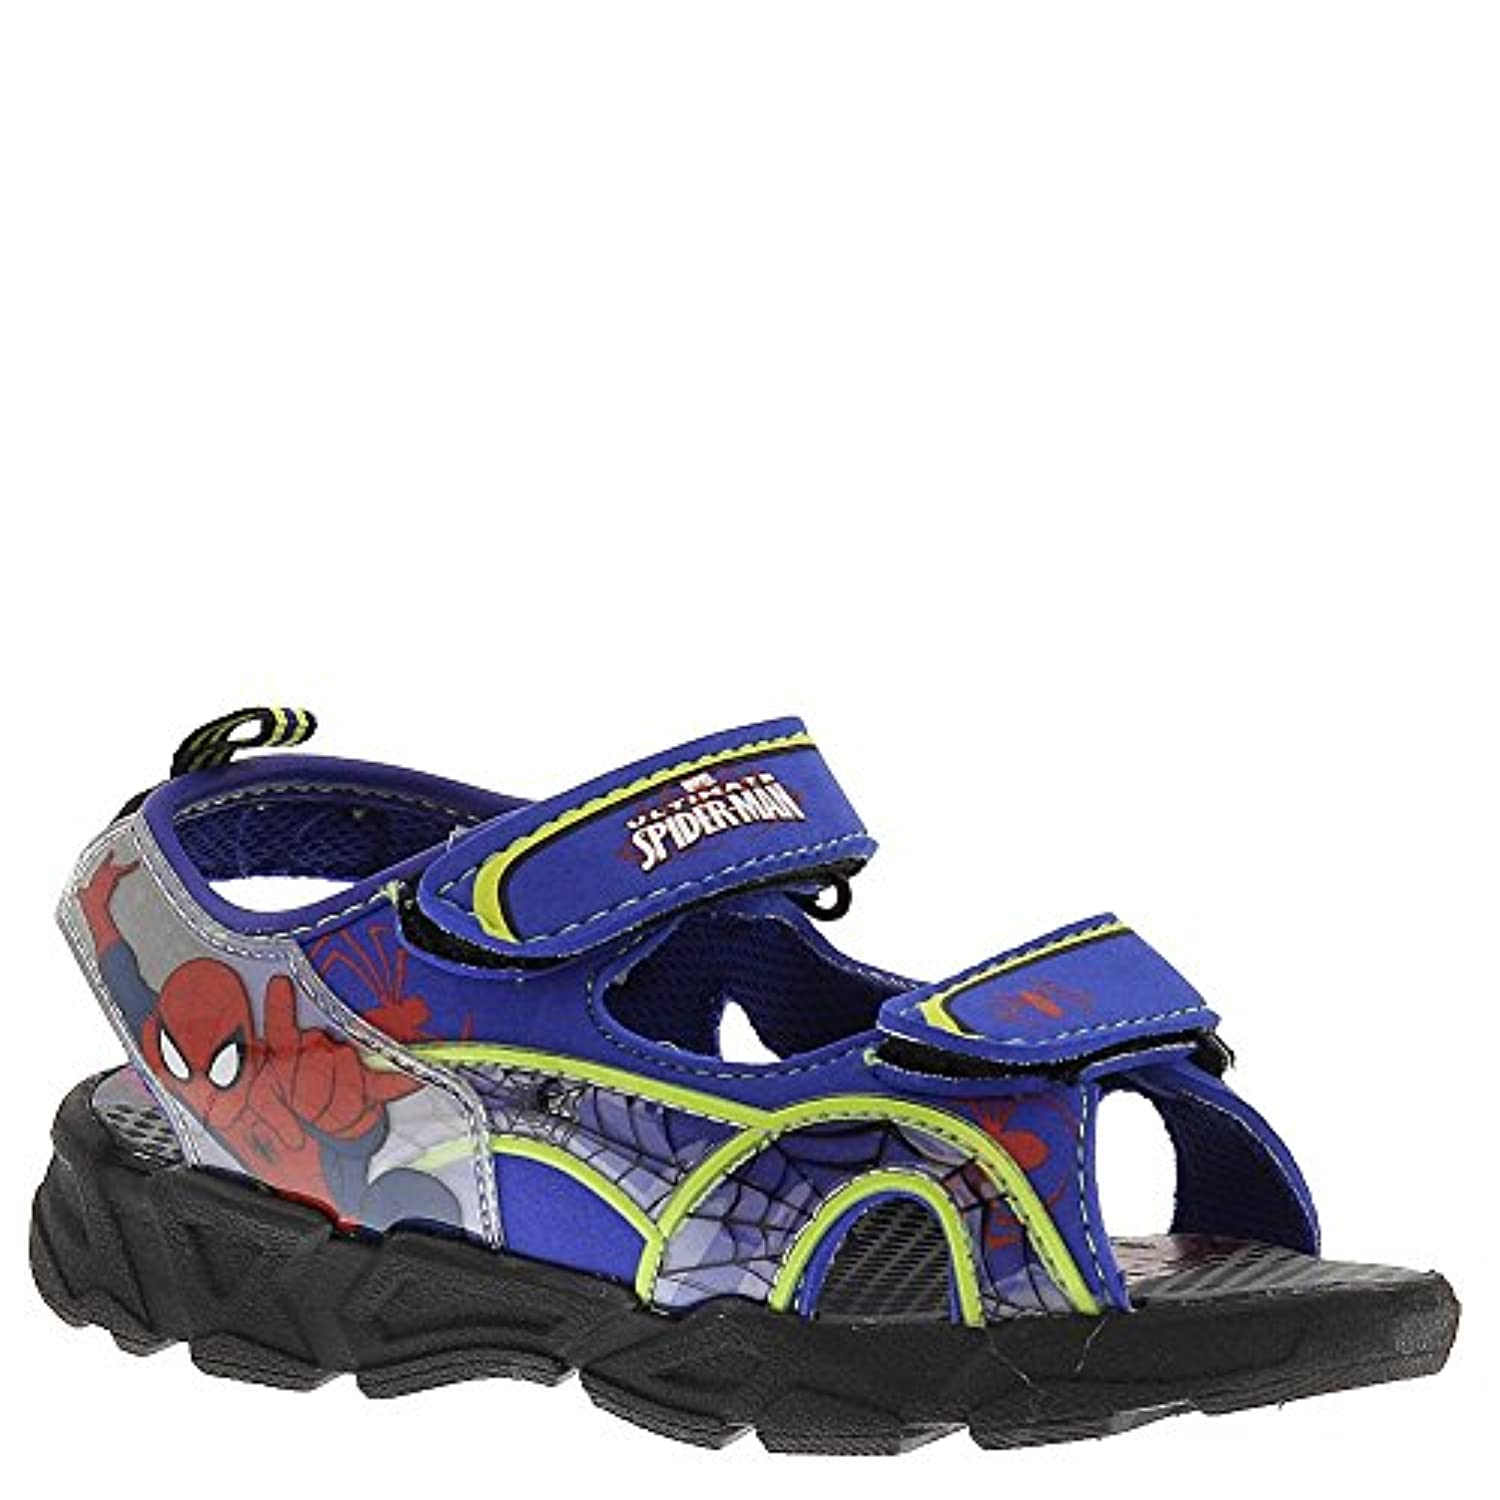 396fcdad389a84 ... Marvel Ultimate Spider-Man Athletic Sandals Light-Up Blue Green Red (